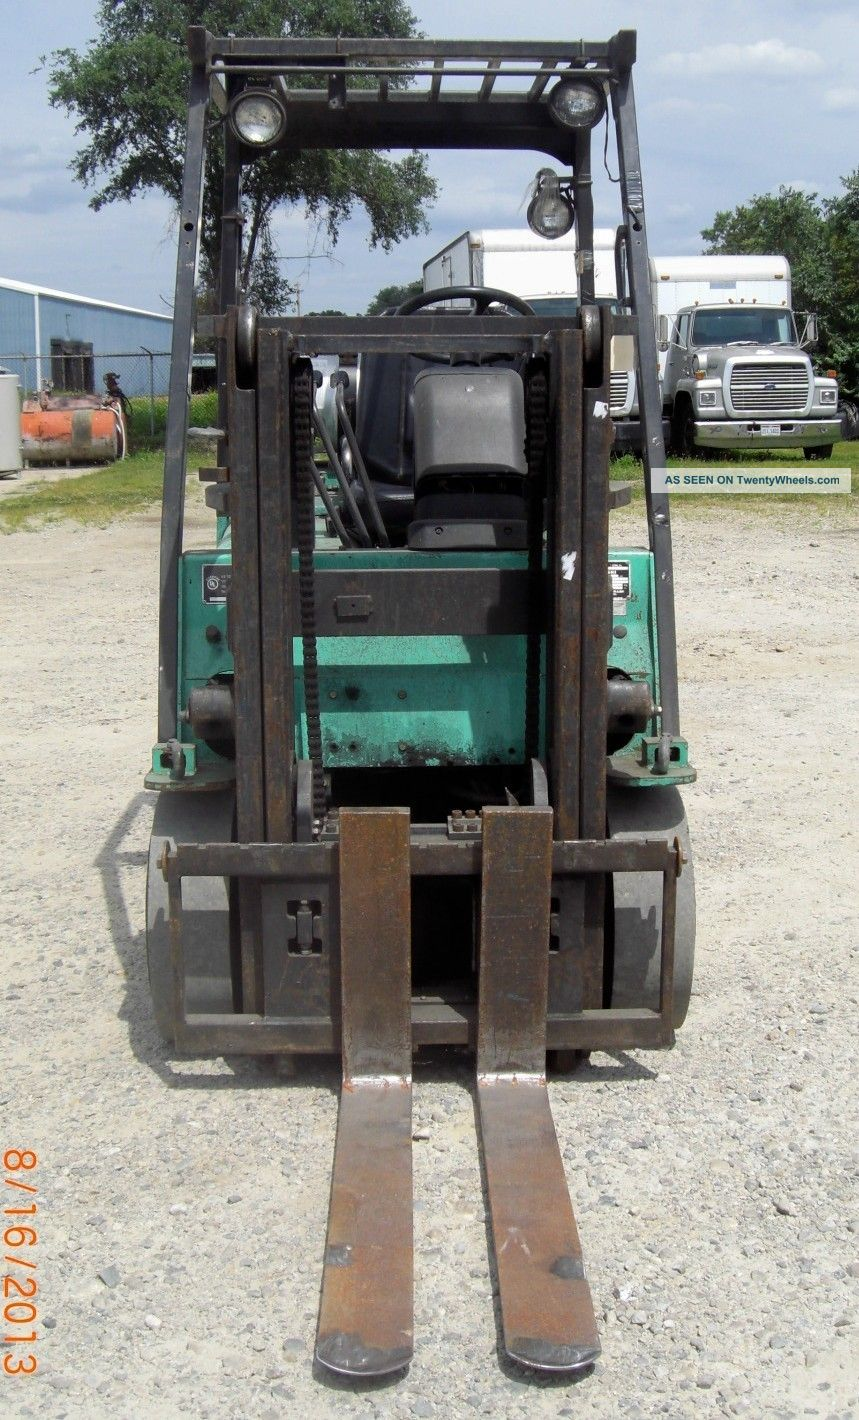 2004 Mitsubishi Fork Lift Diagrams Wiring Fg25 Schematic Fgc25k 5 000 5000 Cushion Tired Trucker Forklift Product Trucks Parts